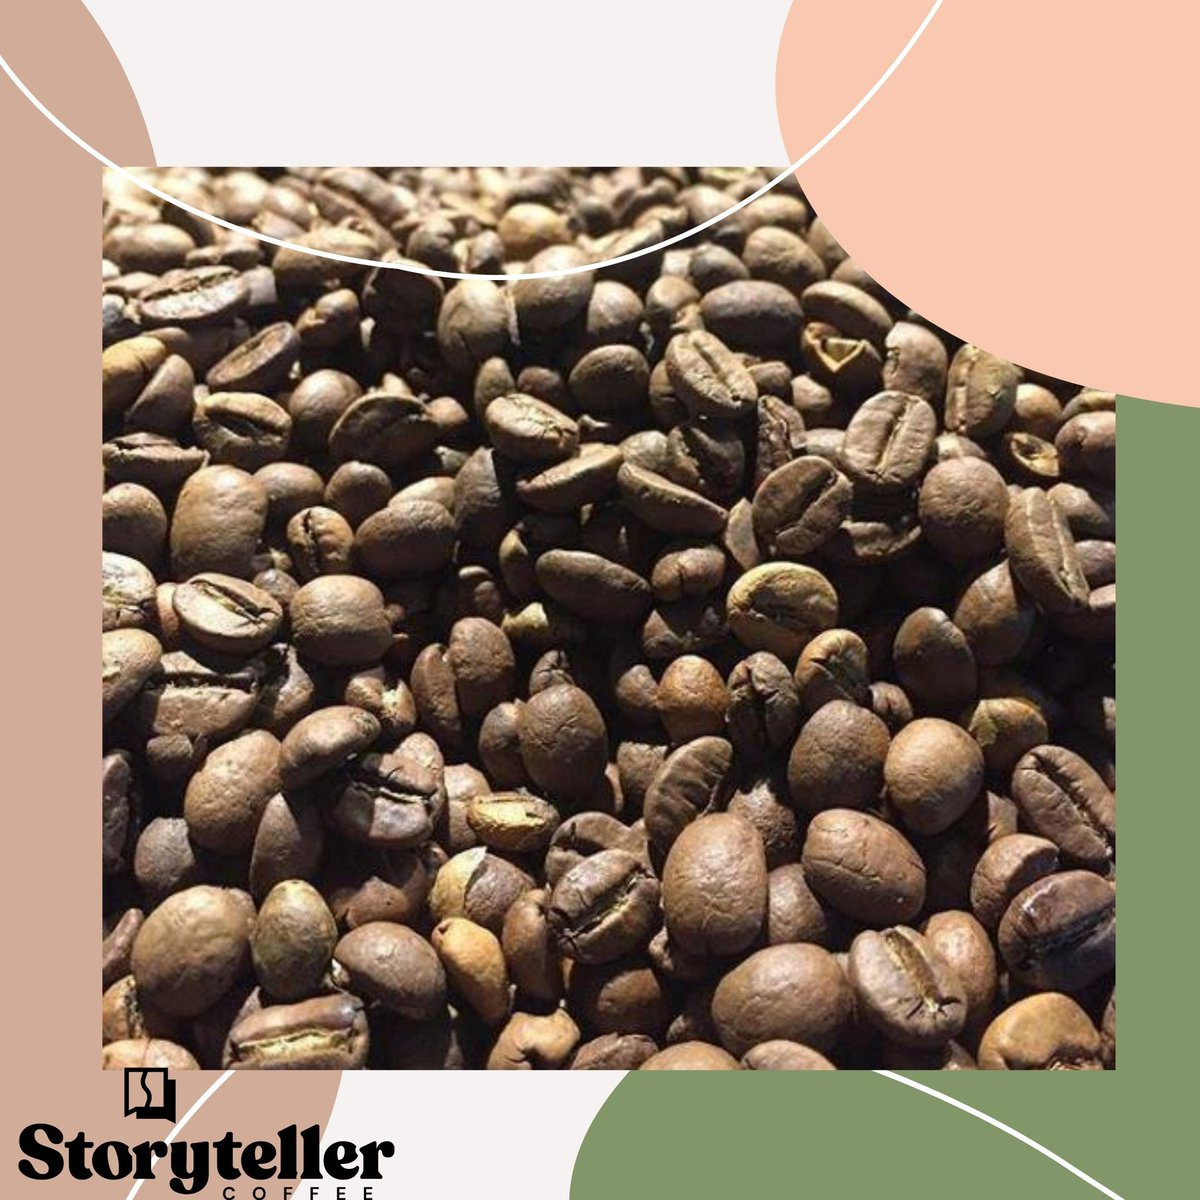 Know the story behind every bean. . Check our webstore and find out the story behind every bean we have!  #coffee #coffeelover #coffeeaddict #drinkstorytellercoffee #coffeebean #floridacoffee #coffeeroasterpic.twitter.com/3N2cvYLkv9